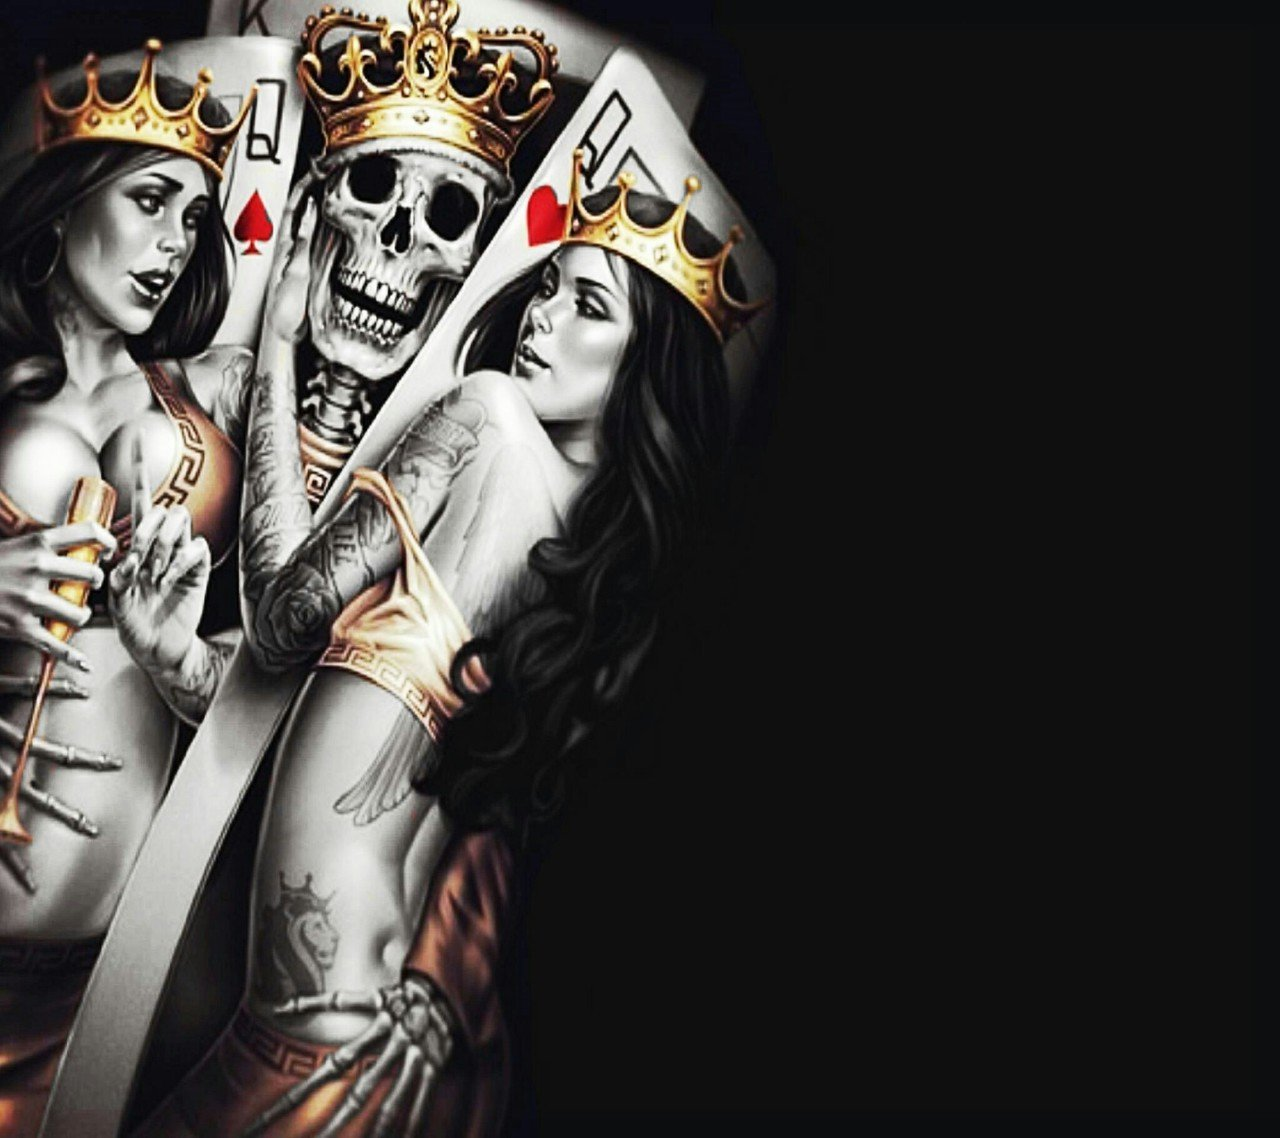 Hd Wallpapers 3d Art Tattoo Design: King And Queen Wallpapers